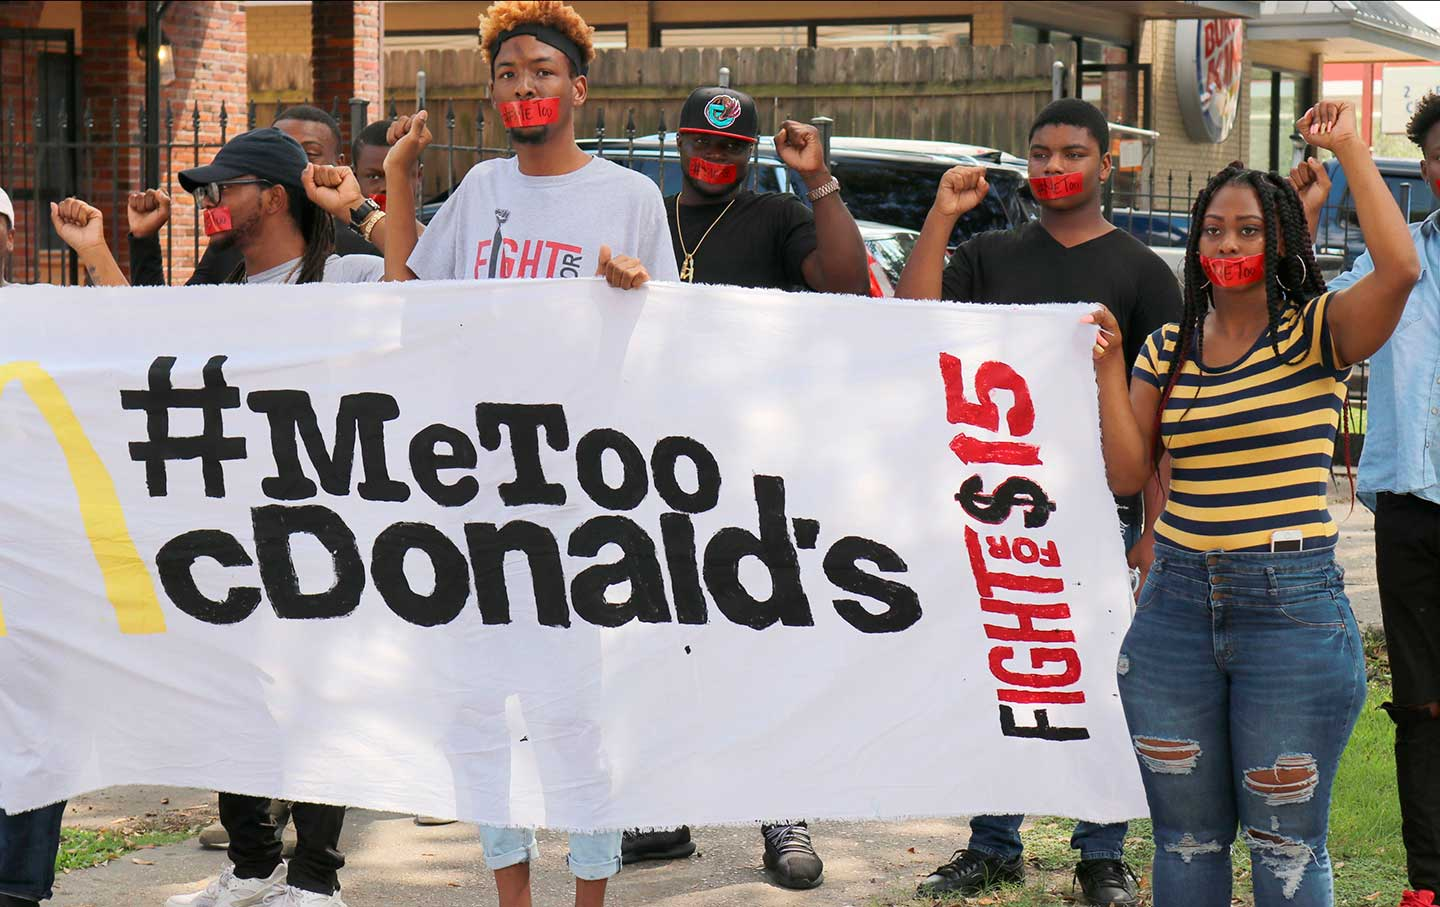 thenation.com - McDonald's Workers Walk Out Over Sexual Harassment